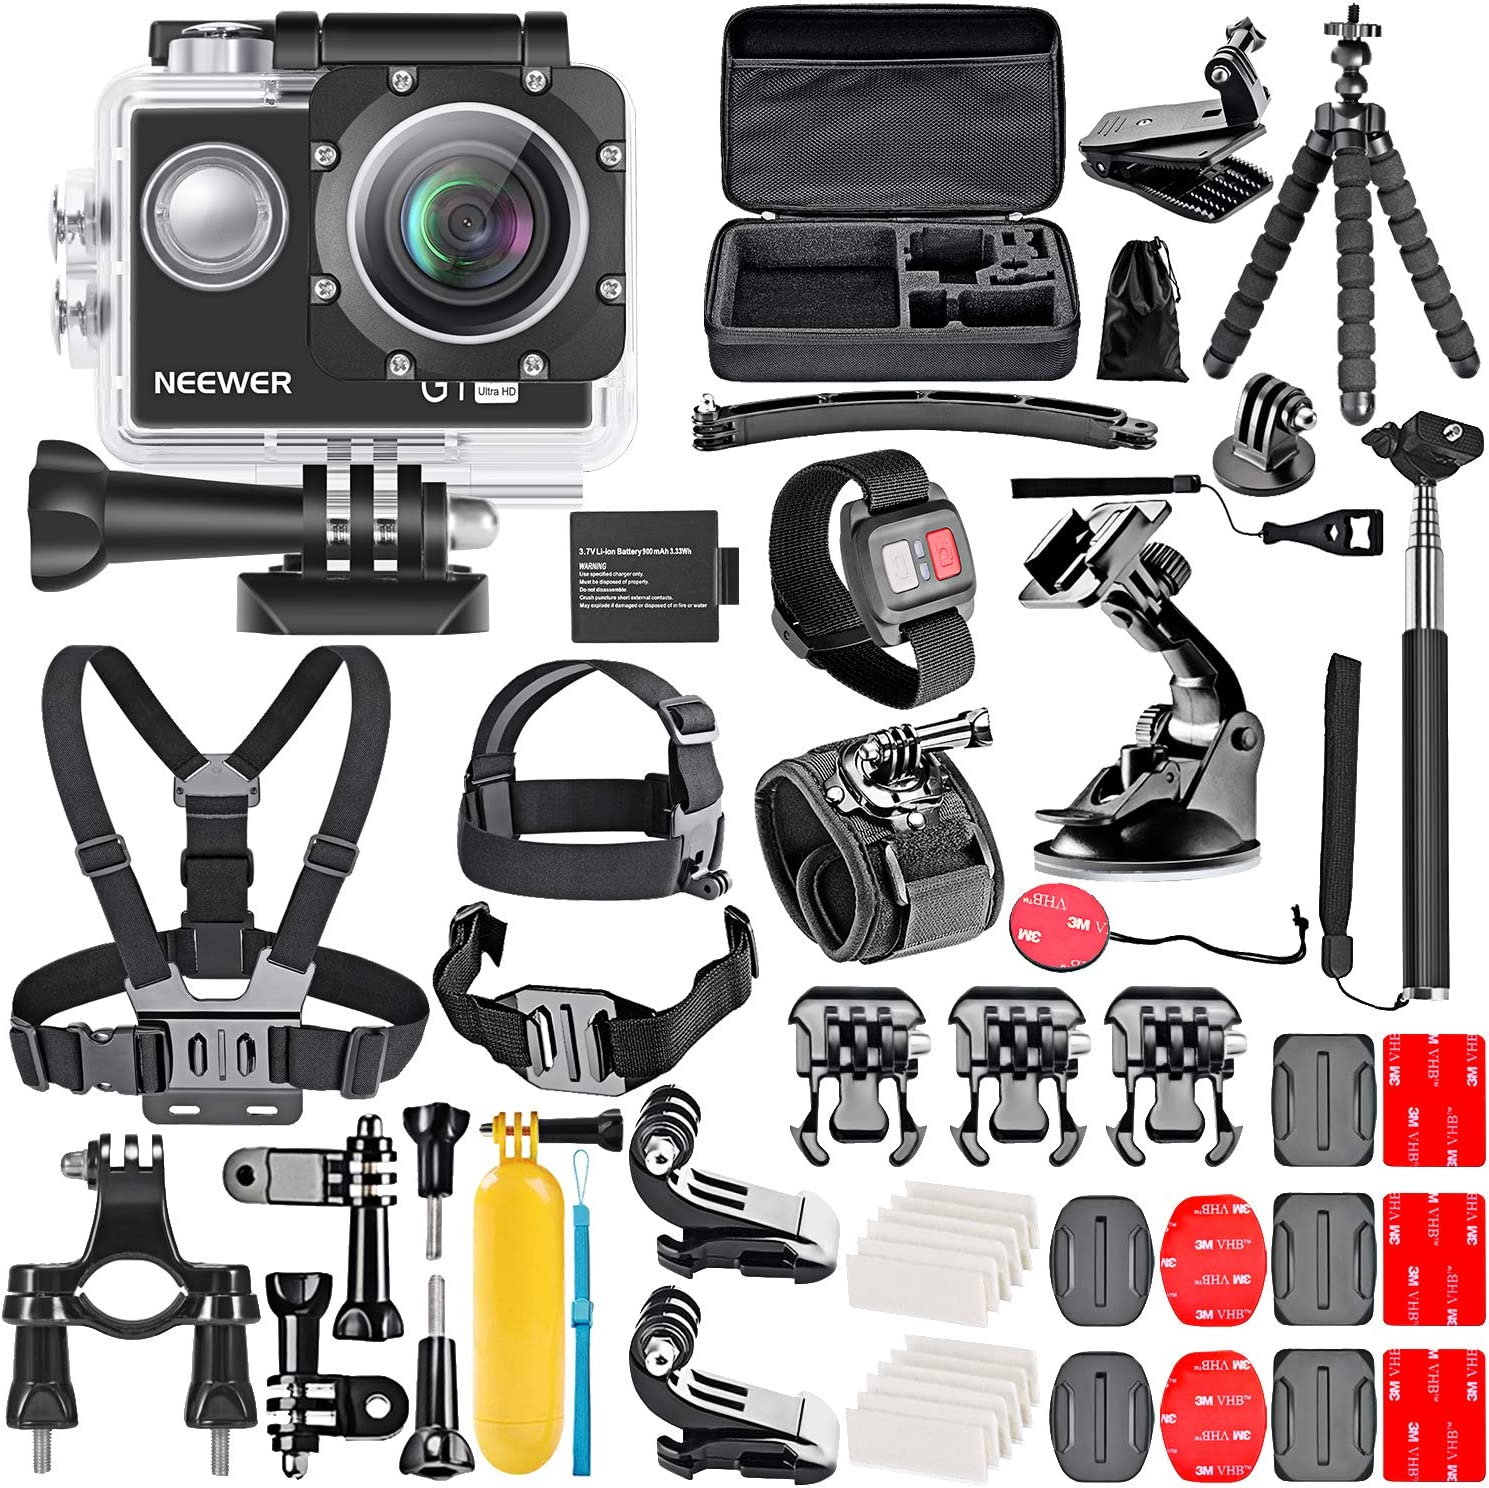 Neewer G1 Ultra HD 4K Action Camera Kit Includes 98 ft Underwater Waterproof Camera 16MP 4K/30FPS 170 Degree Wide Angle WiFi Sports Cam High-tech Sensor with Remote/Battery and 50-in-1 Accessory Kit